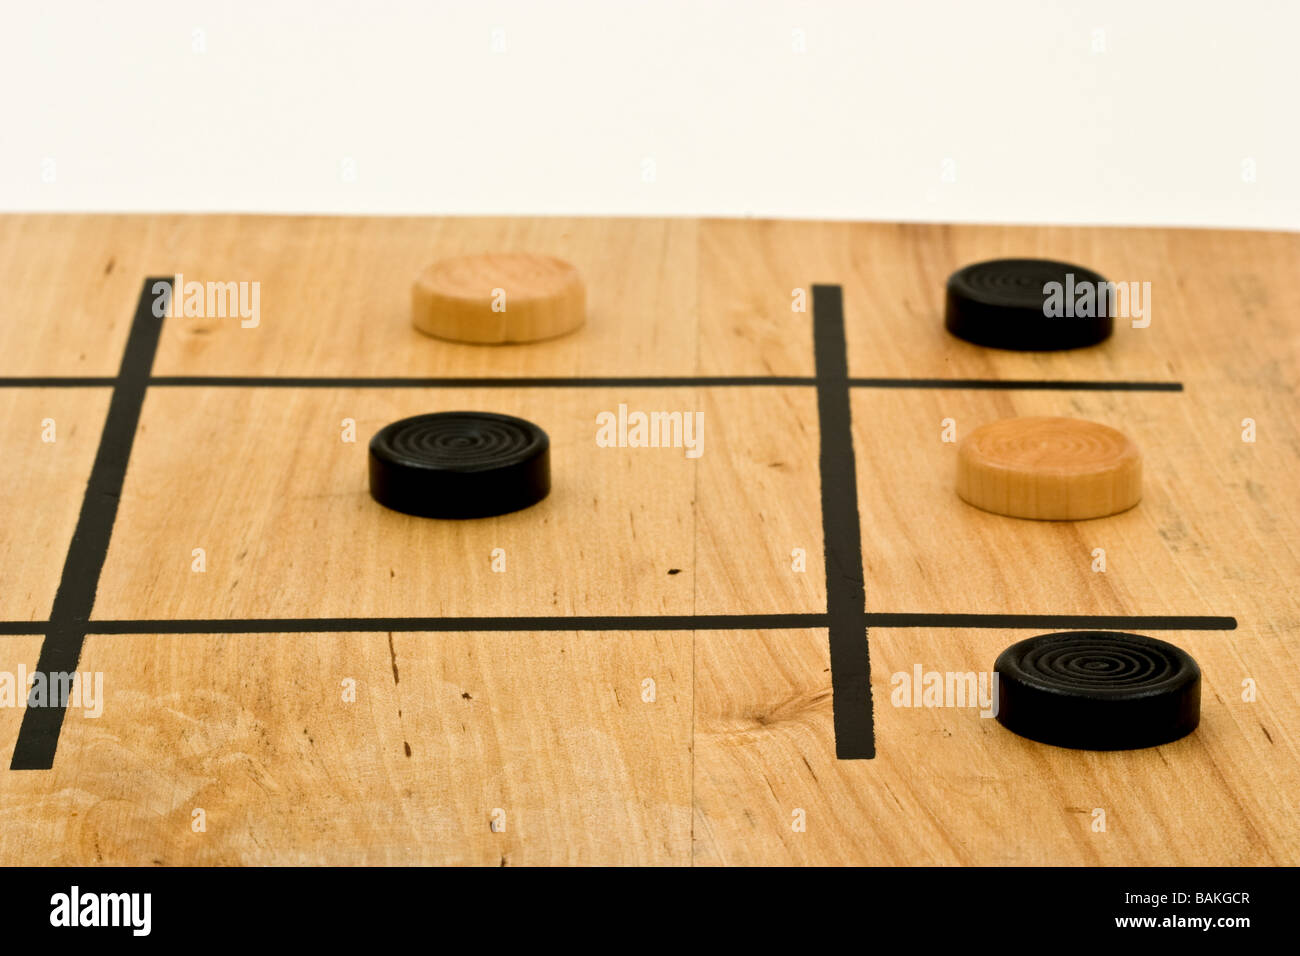 Winning tic-tac-toe pieces on a board - Stock Image